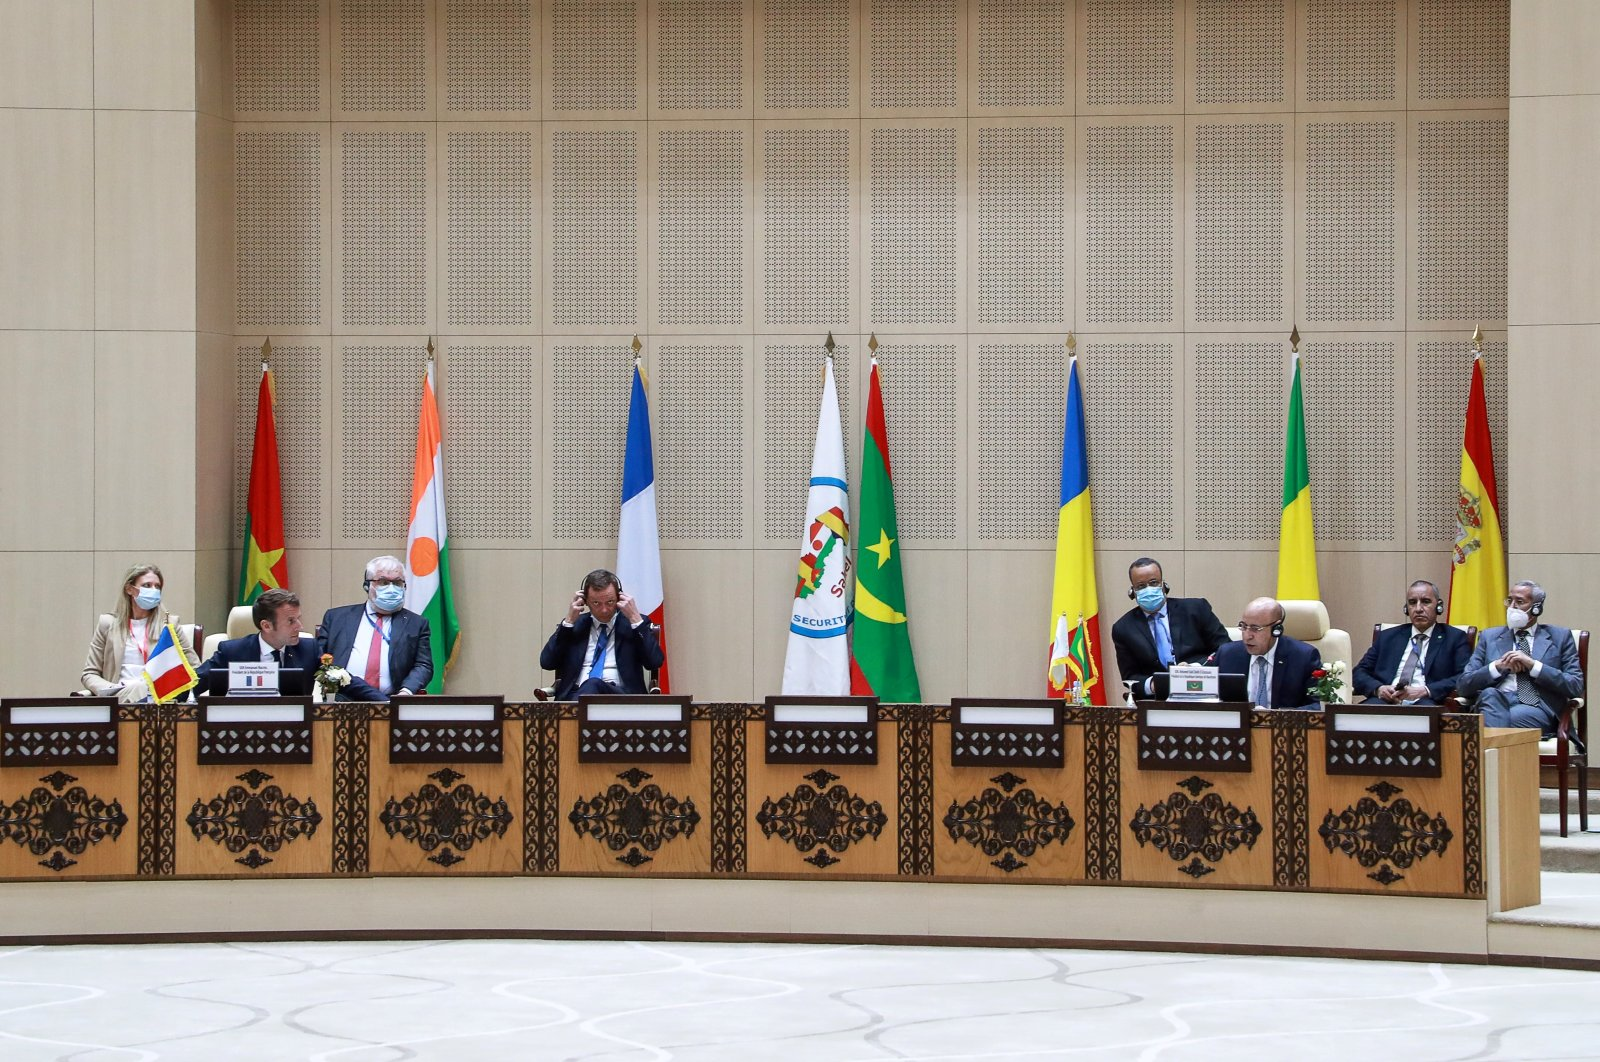 French President Emmanuel Macron listens as Mauritanian President Mohamed Ould Cheikh El Ghazouani speaks during the G5 Sahel summit in Nouakchott, Mauritania, June 30, 2020. (Reuters Photo)